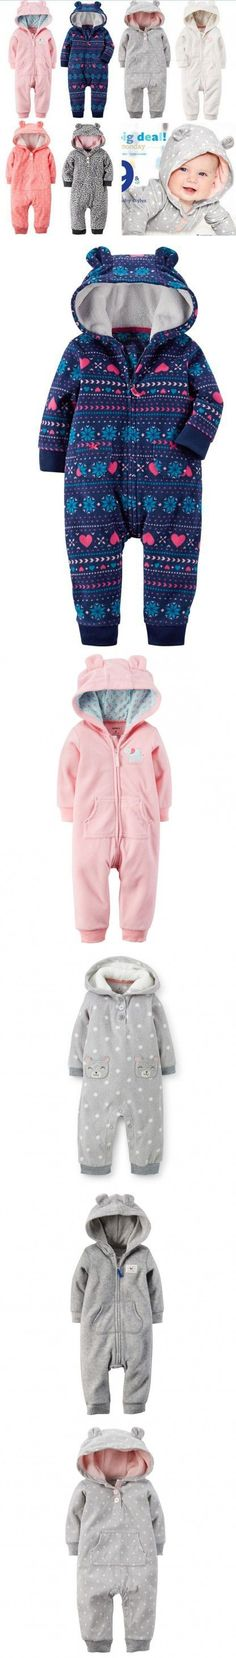 2015 New brands Baby Girl Boy Winter Clothes Thickening Baby Rompers Polar Fleece Newborn Winter Coverall Hooded Baby Clothing #BabyClothing